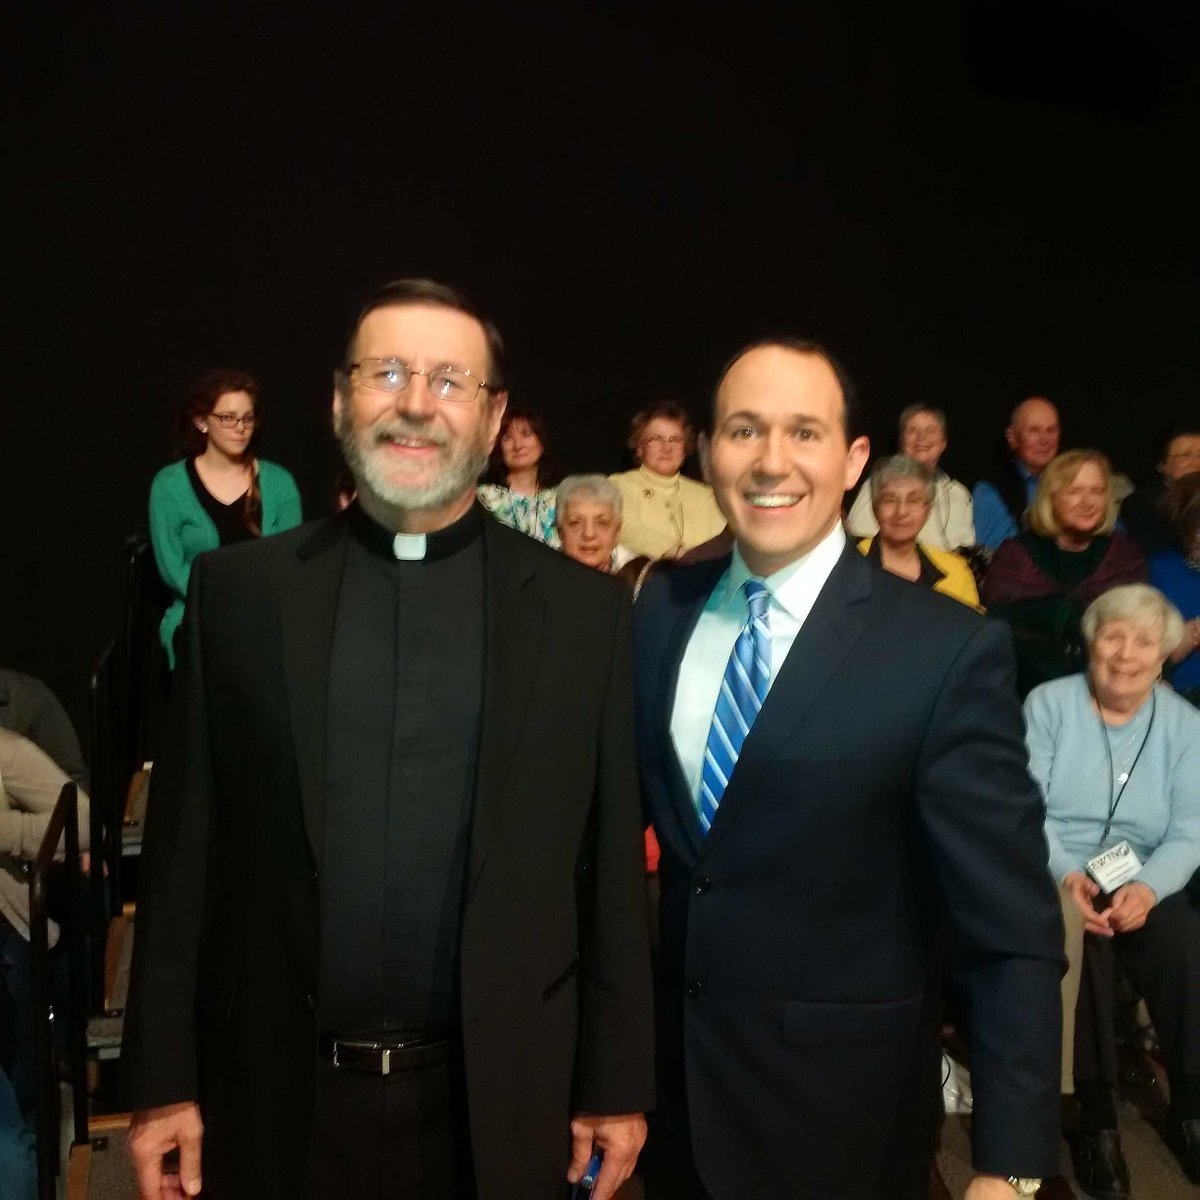 Prayers for my pal @FrMitchPacwaSJ who had a heart attack last night. The angioplasty worked and he is on the mend! https://t.co/LQ8VZJewLc